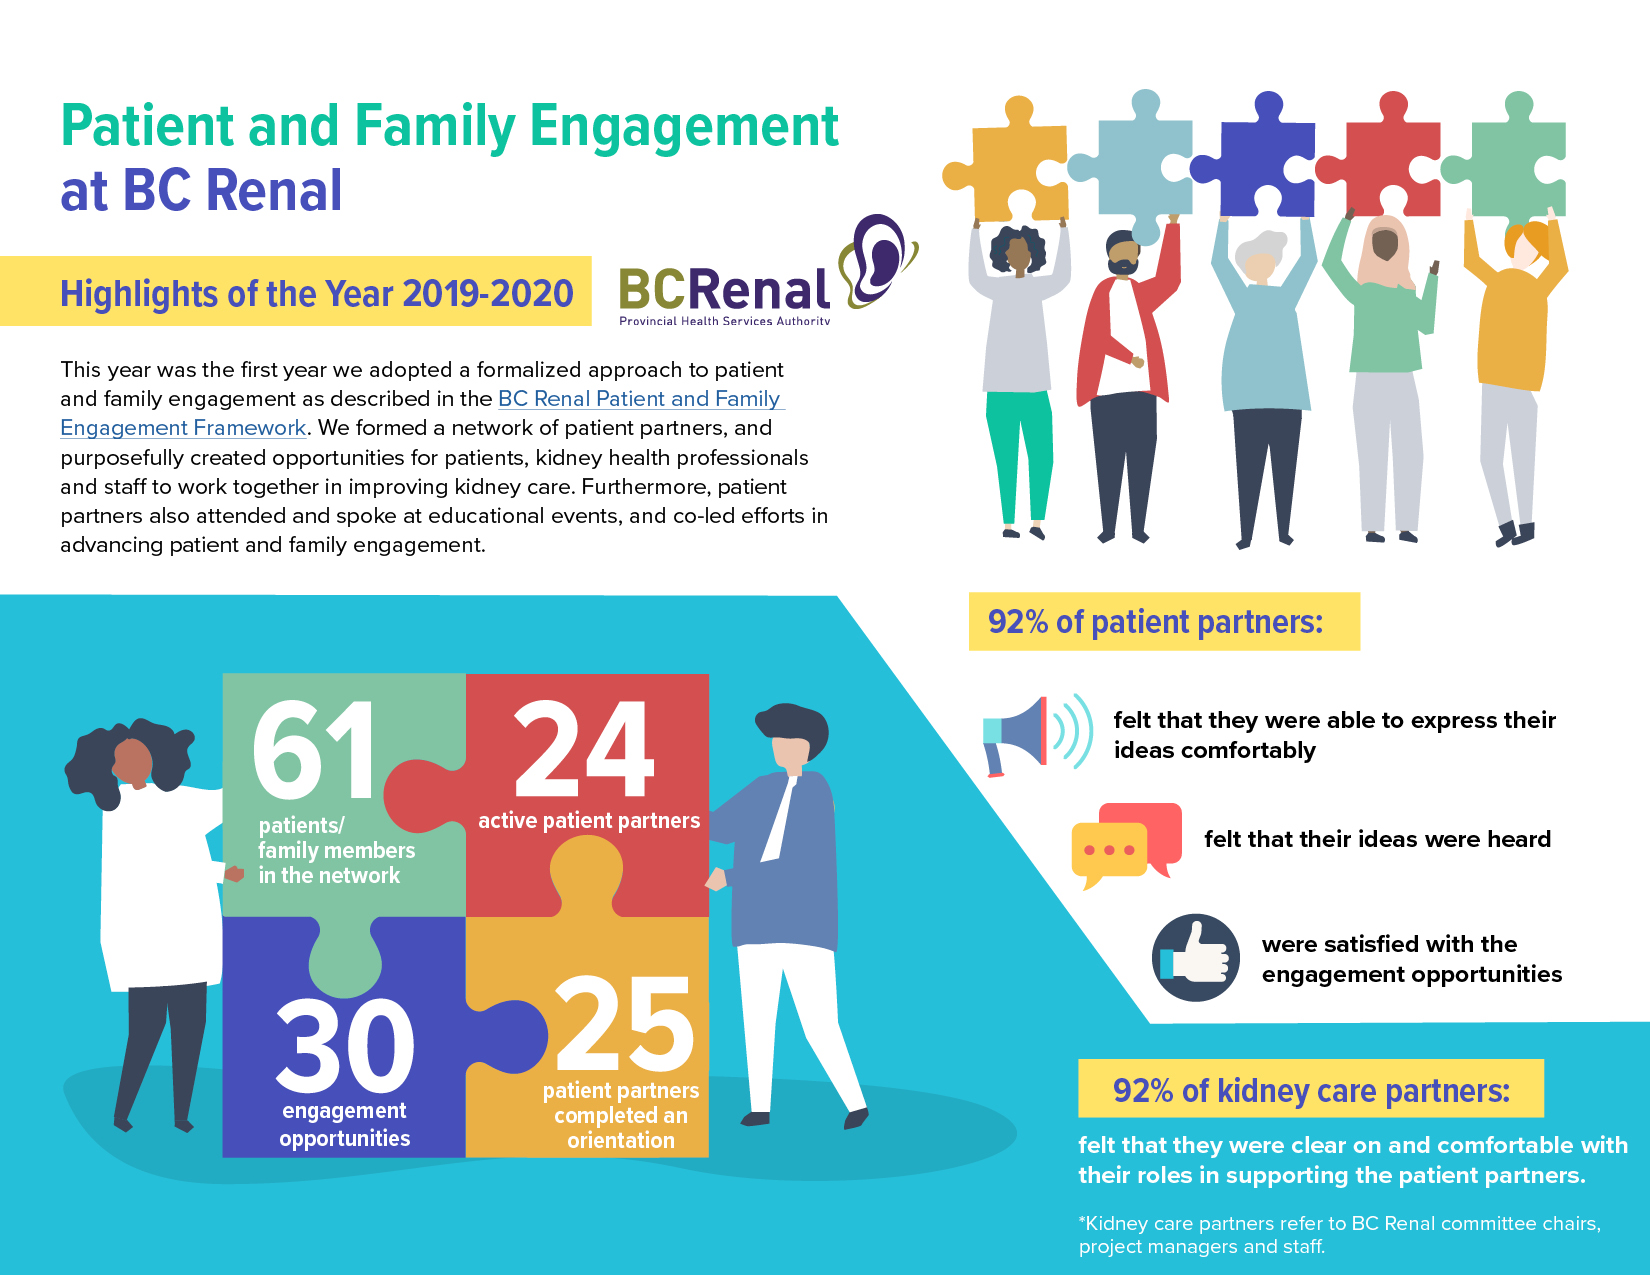 Patient_Family_Engagement_at_BC_Renal.jpg